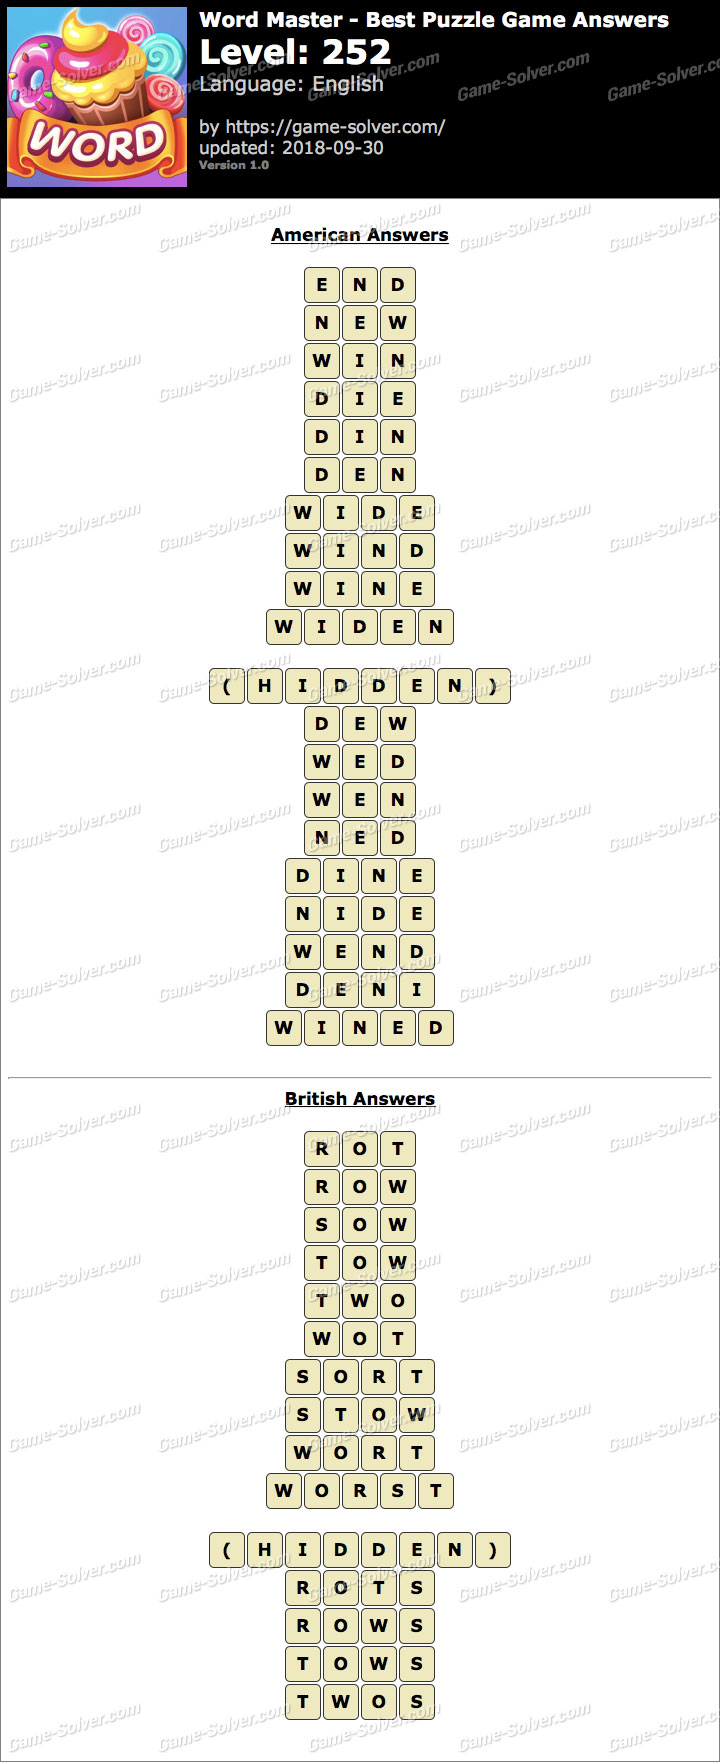 Word Master-Best Puzzle Game Level 252 Answers